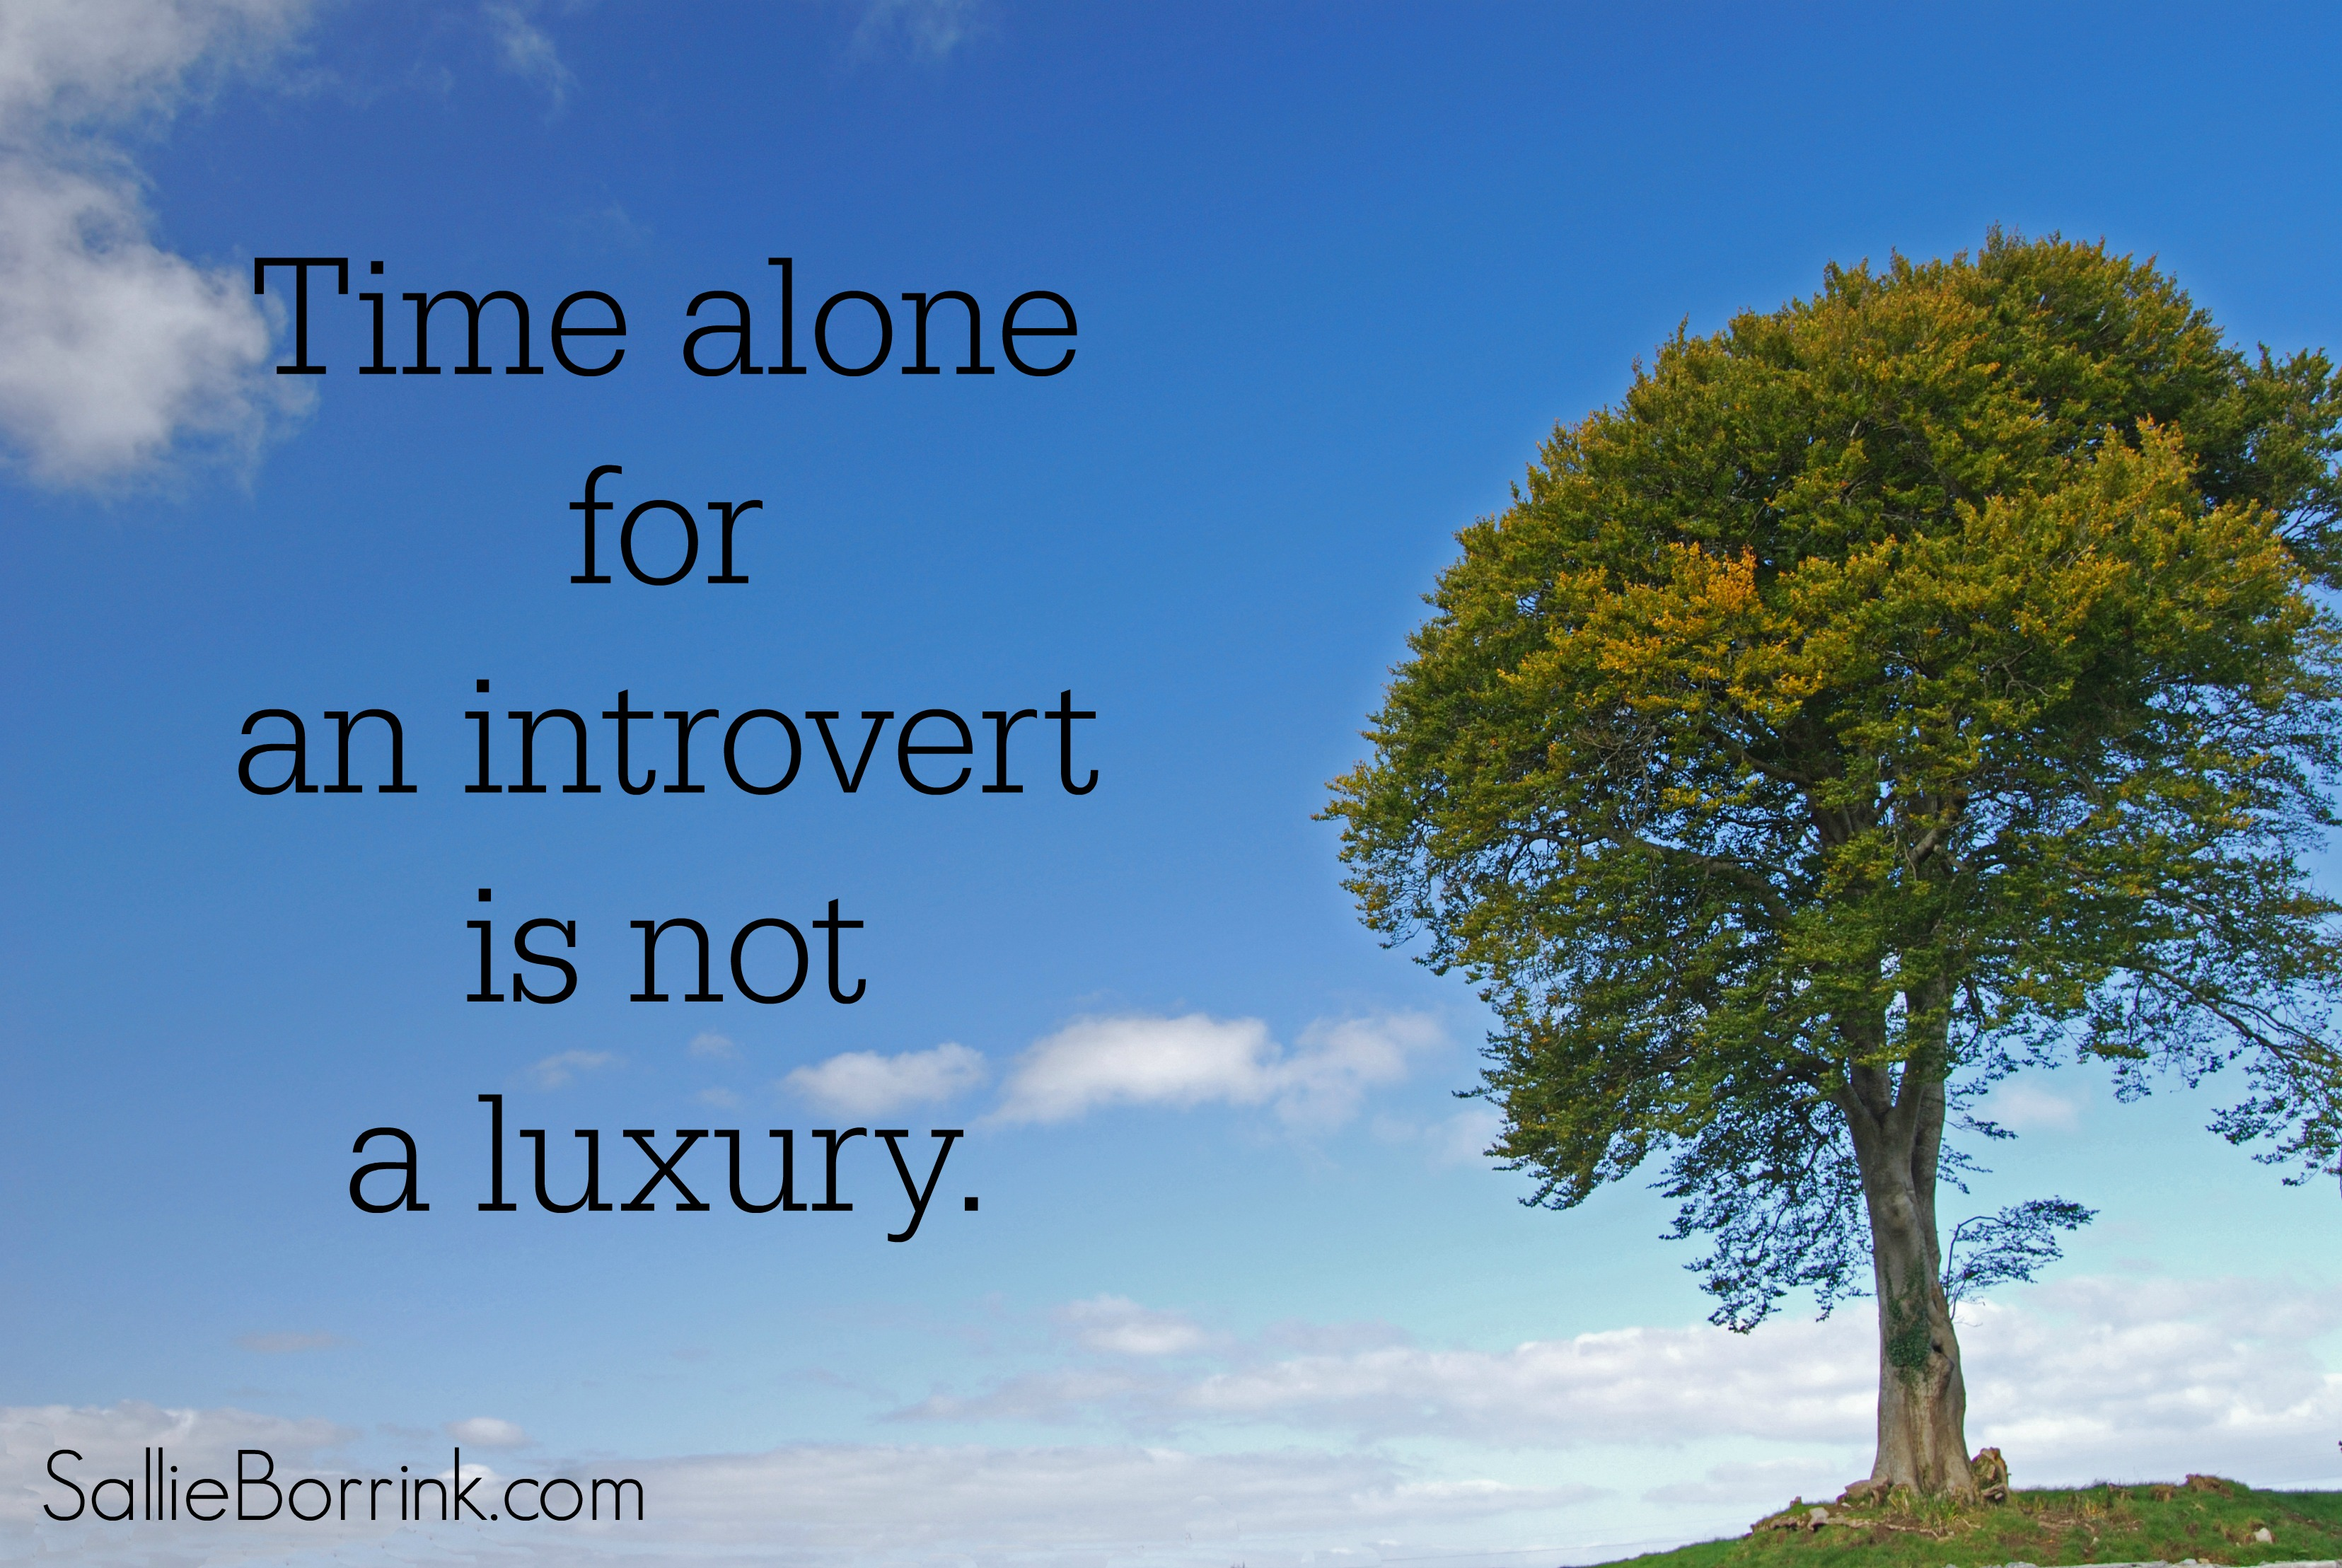 Time alone for an introvert is not a luxury